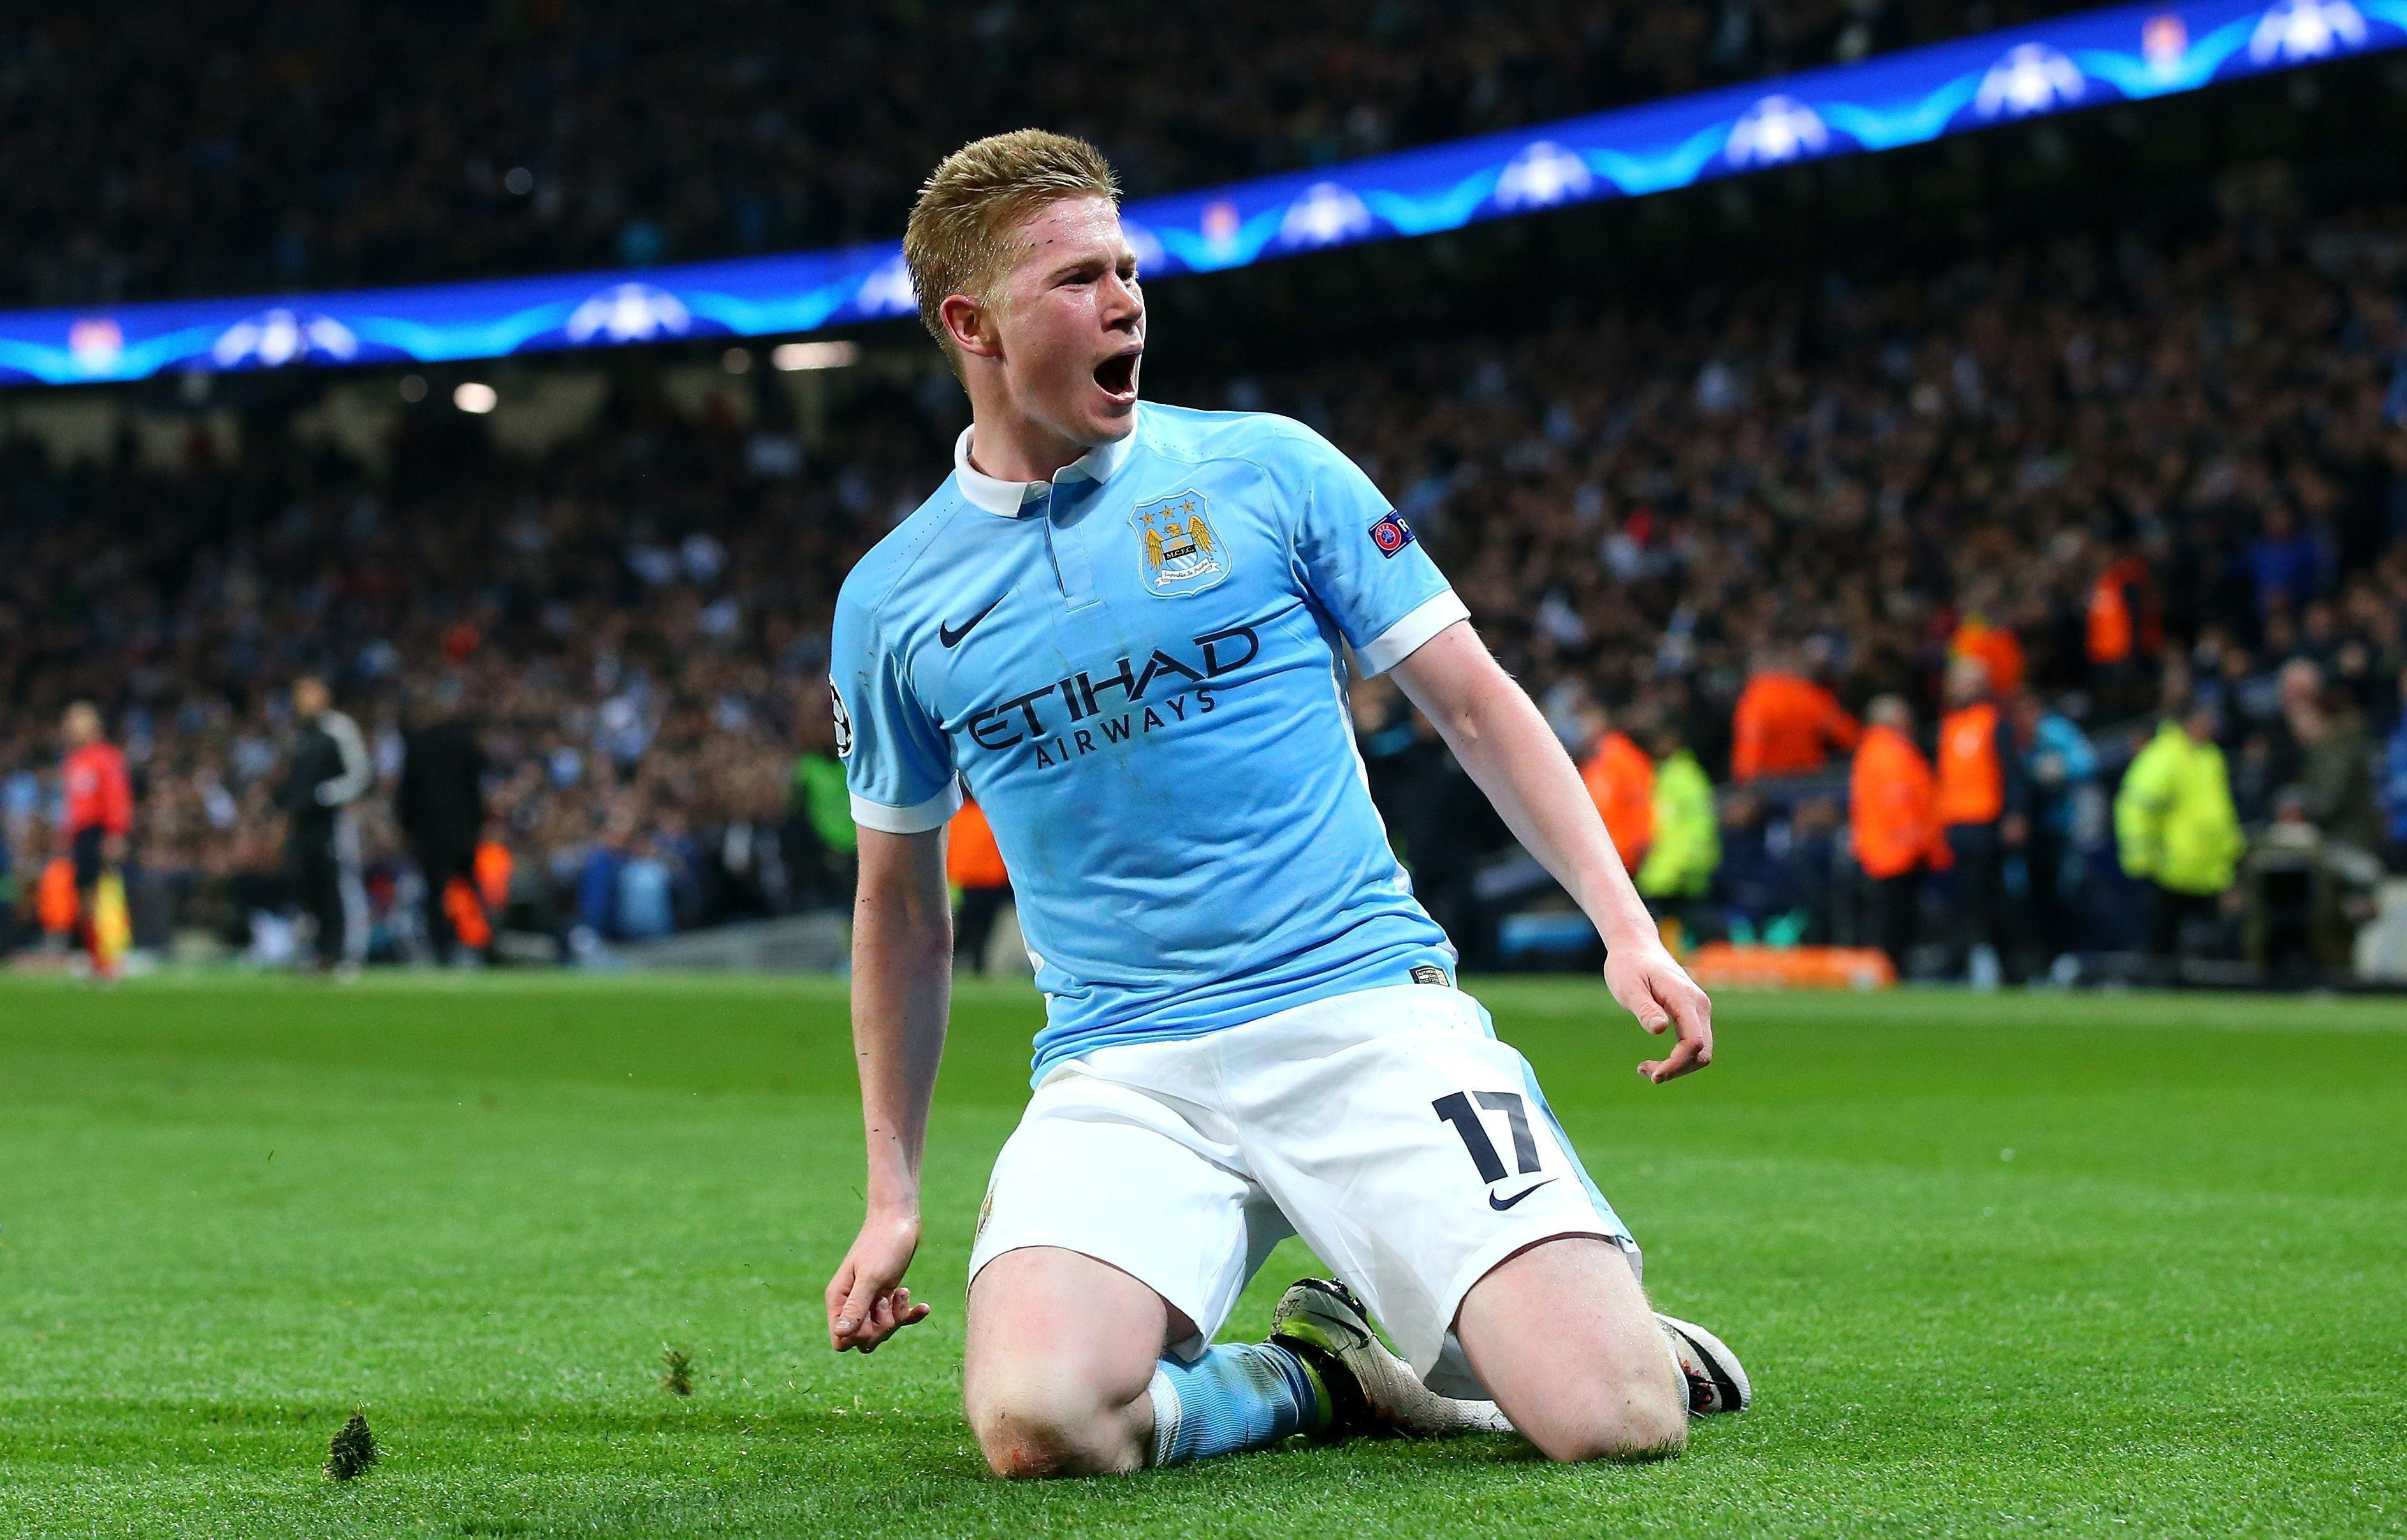 Kevin De Bruyne Wallpaper HD For Android